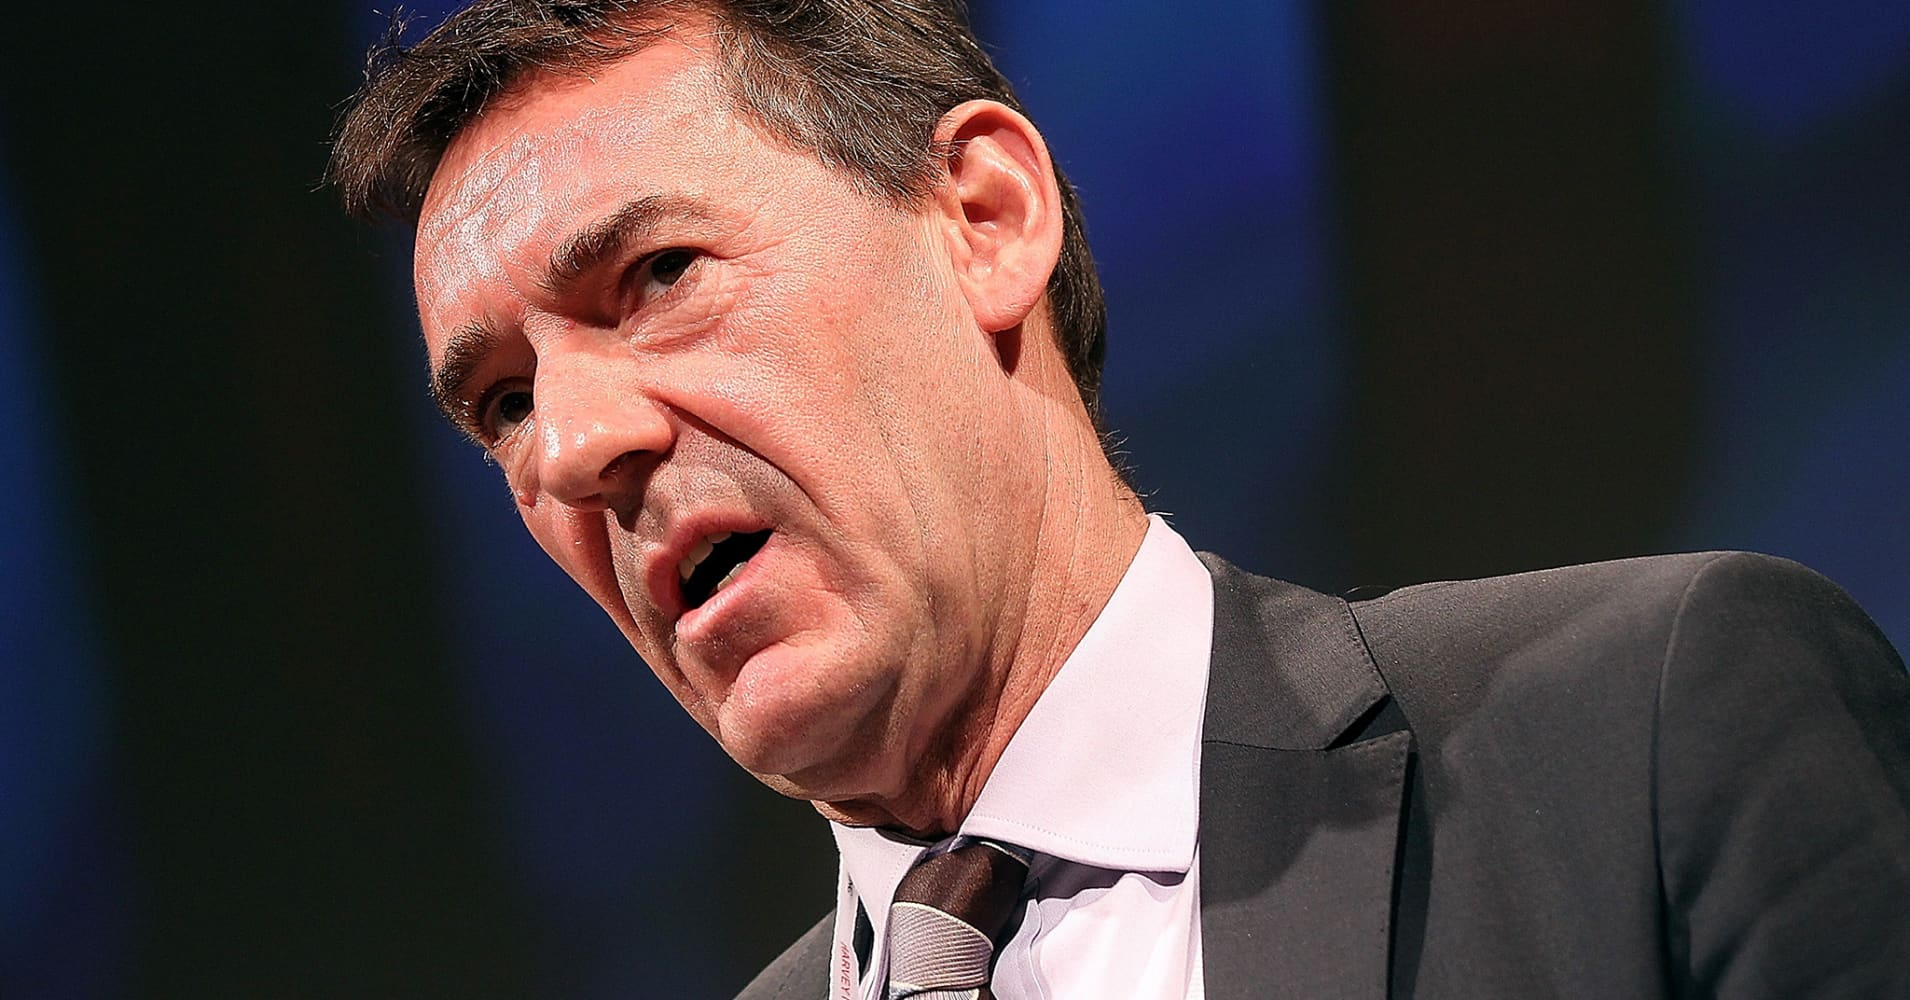 Economist Jim O'Neill says his fears over China are at a 30-year high